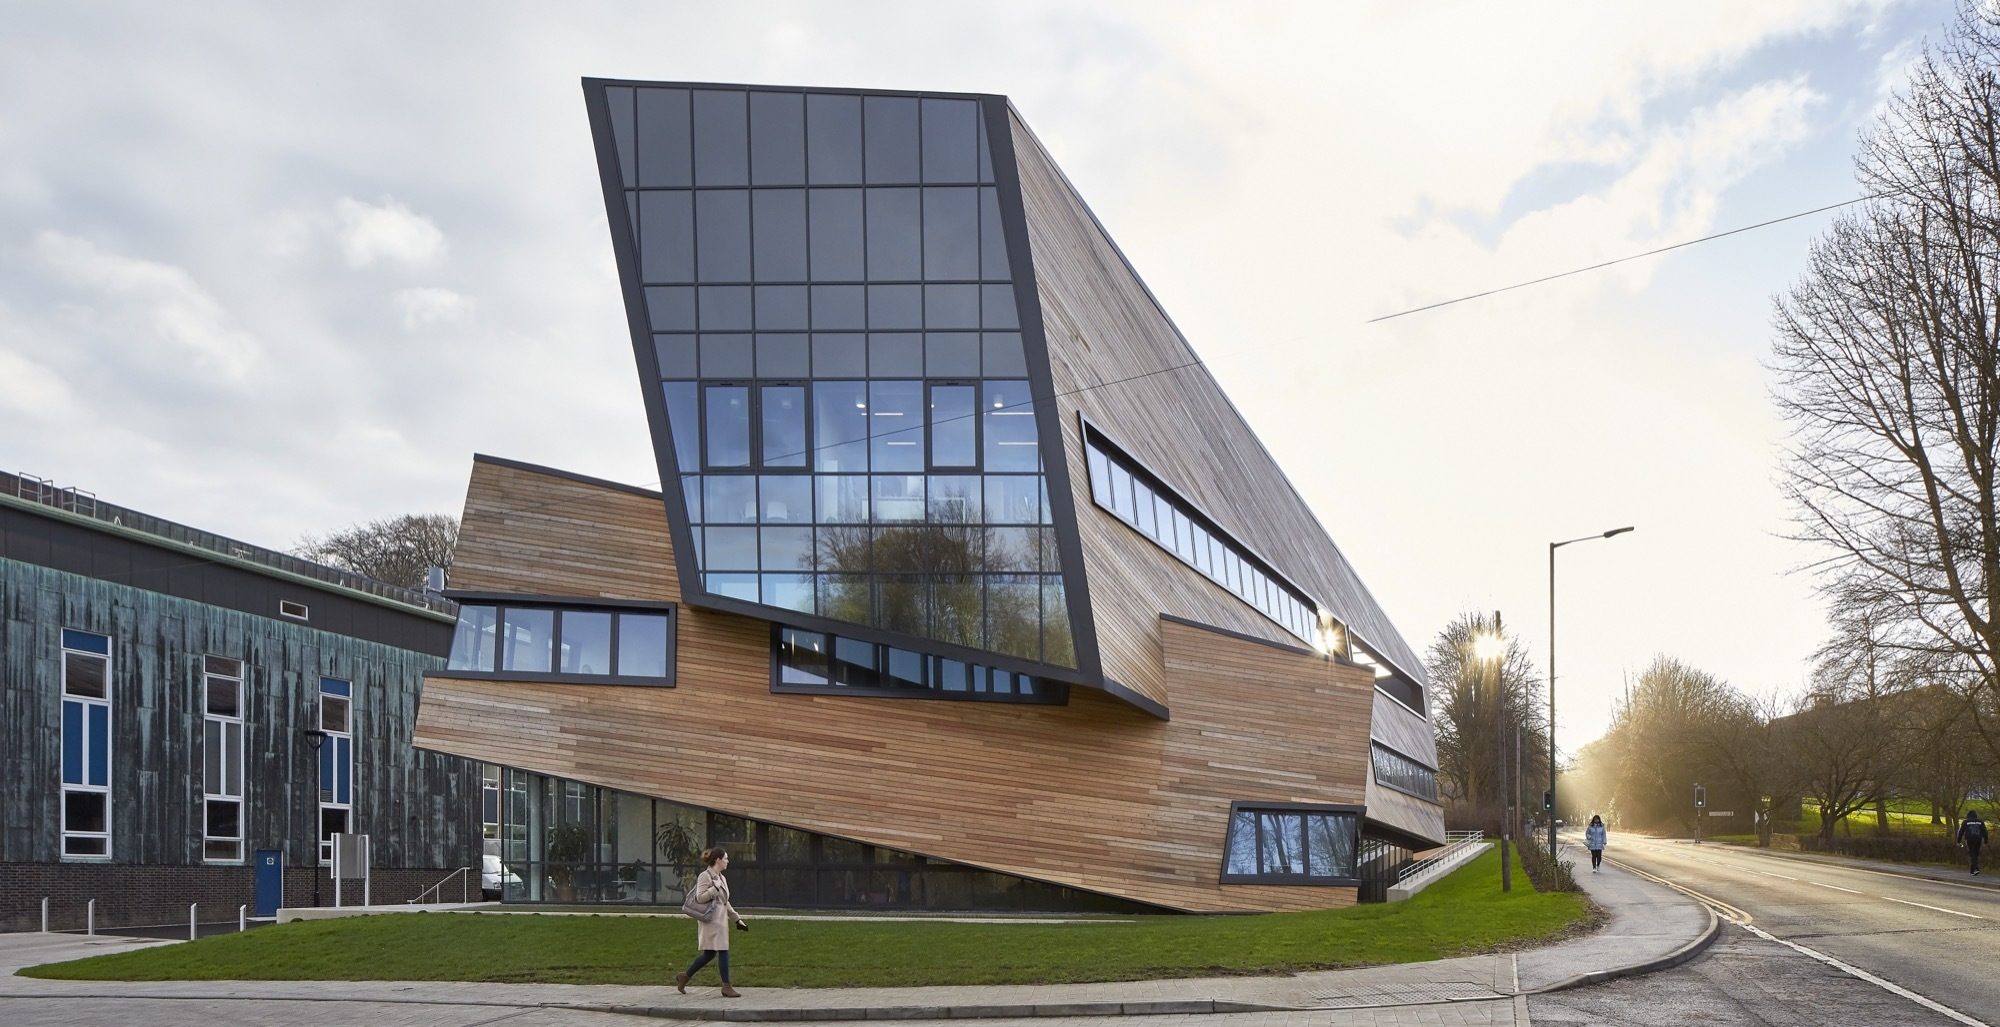 Gallery of ogden centre studio libeskind 1 for Daniel libeskind architectural style